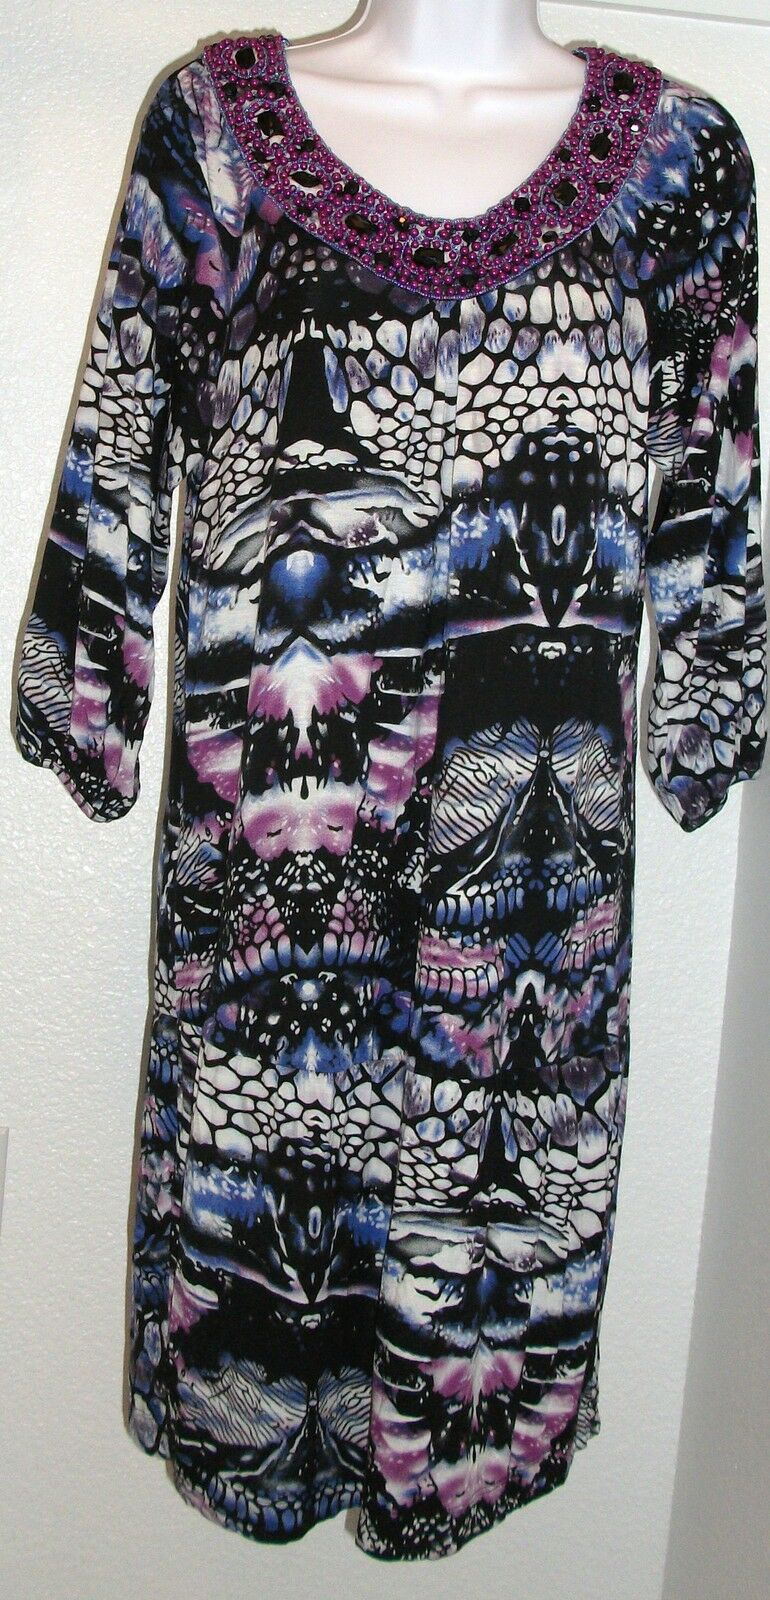 NWOT Genuine greenIGO Paris Paris Paris beaded 3 4 sleeve purple shades dress, size L 975a22